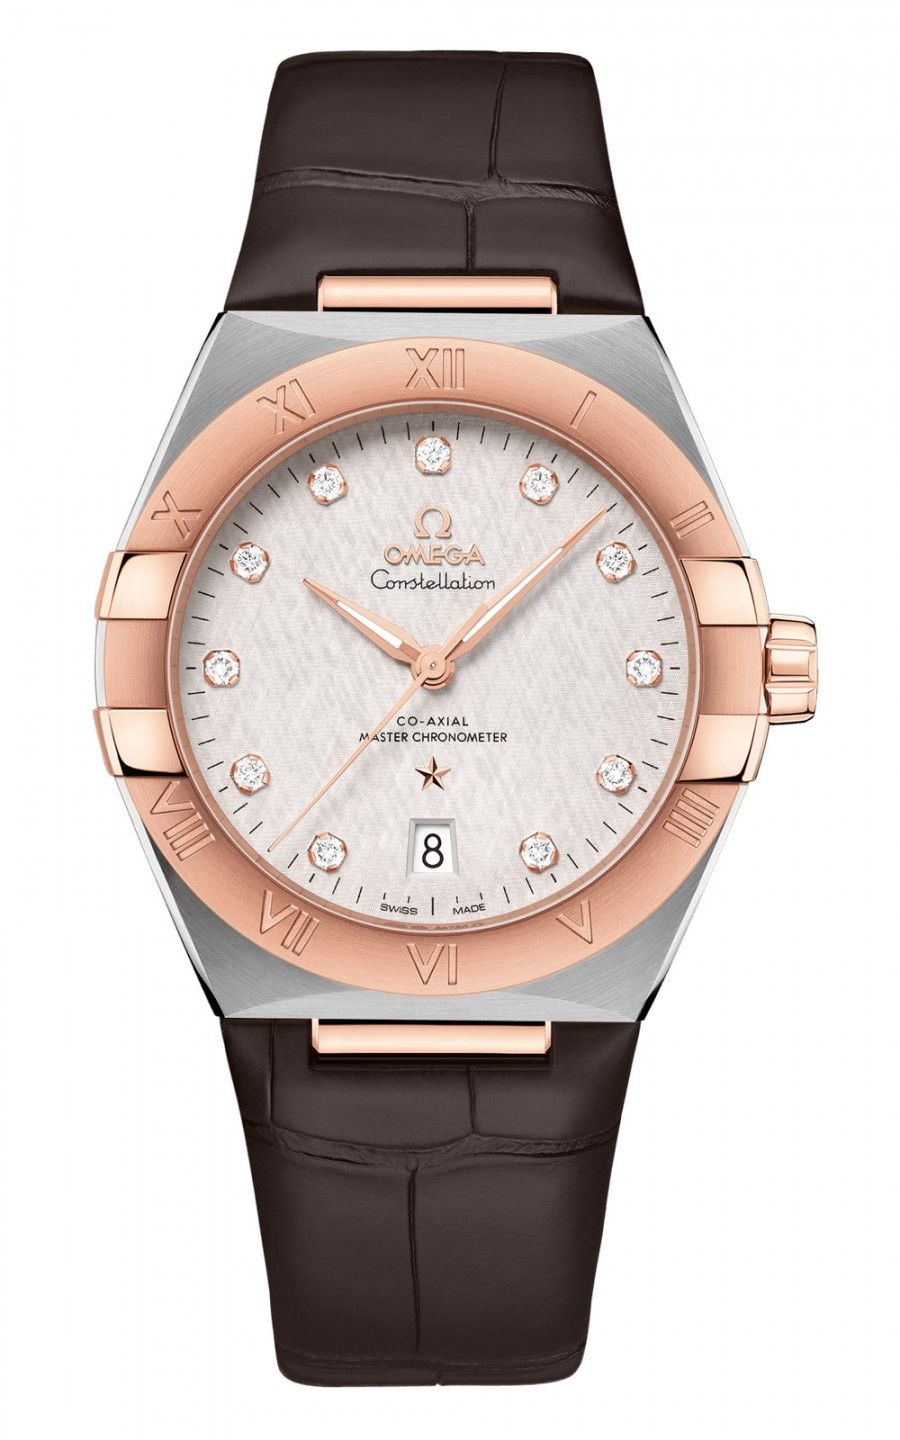 Hình Đồng hồ Omega Constellation Co‑Axial Master Chronometer, 39mm 131.23.39.20.52.001